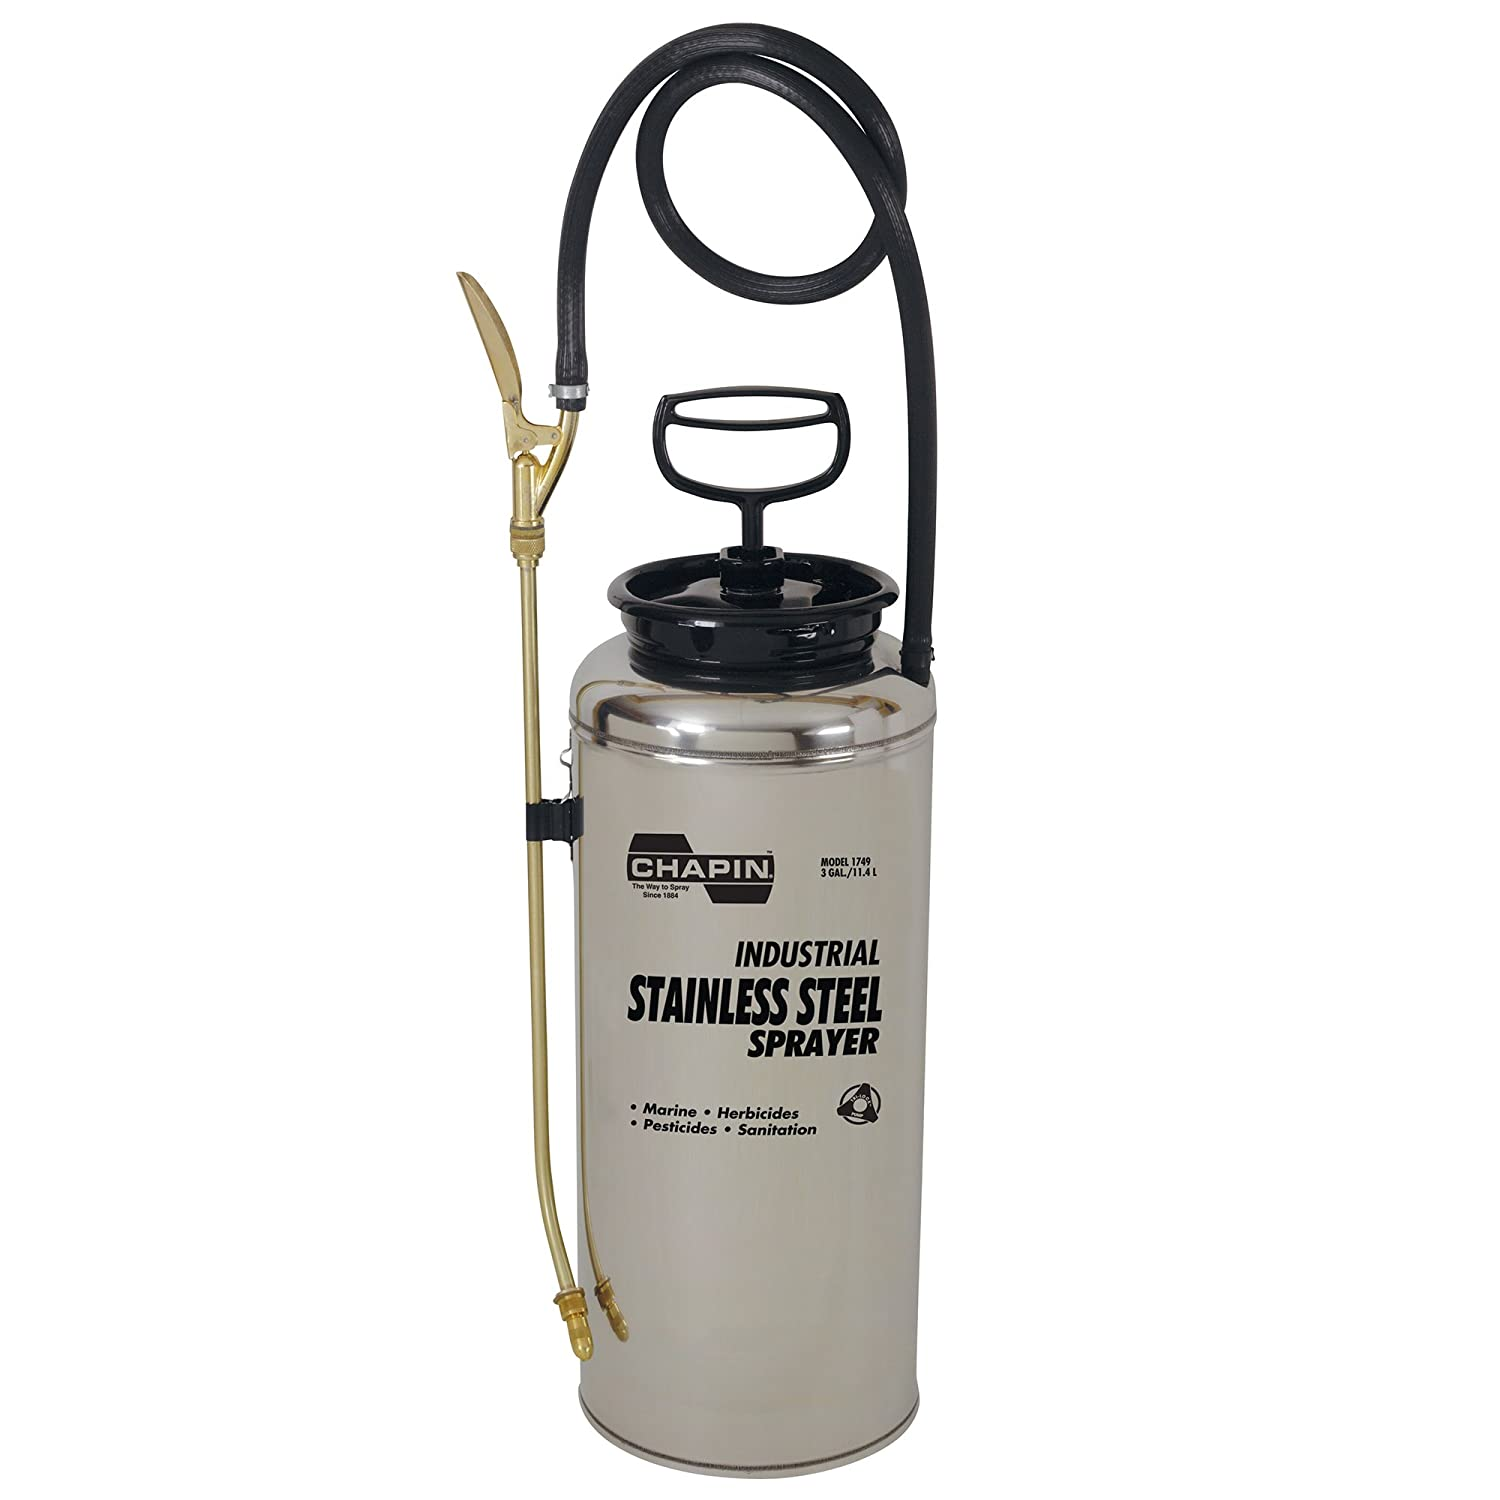 Chapin 1749 3-Gallon Industrial Stainless Steel Sprayer for Fertilizer, Herbicides and Pesticides (1 Sprayer/Package)